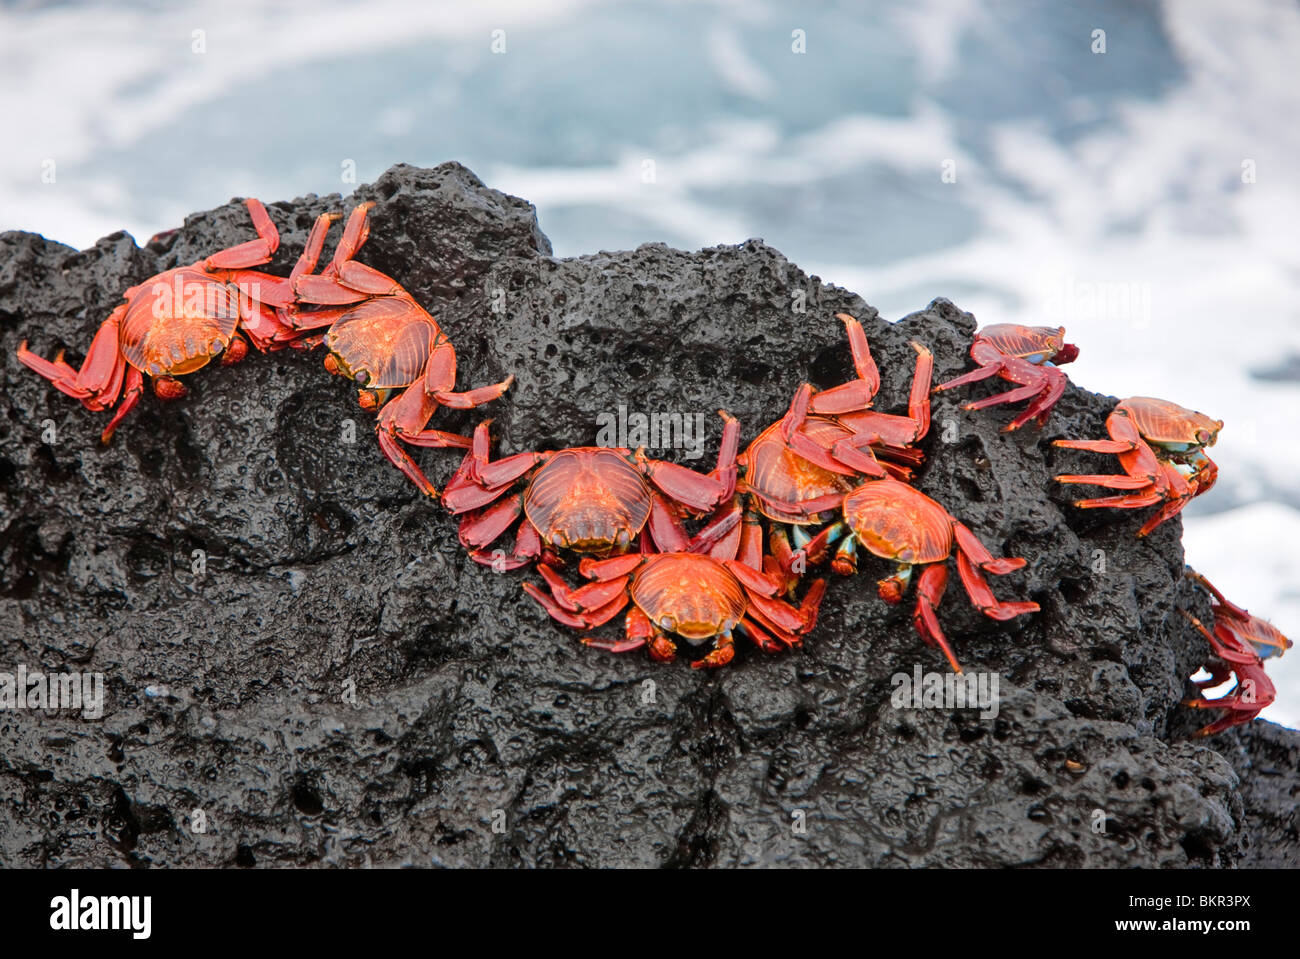 Galapagos Islands, Brightly coloured Sally lightfoot crabs or red lava crabs - on Santiago Island. - Stock Image